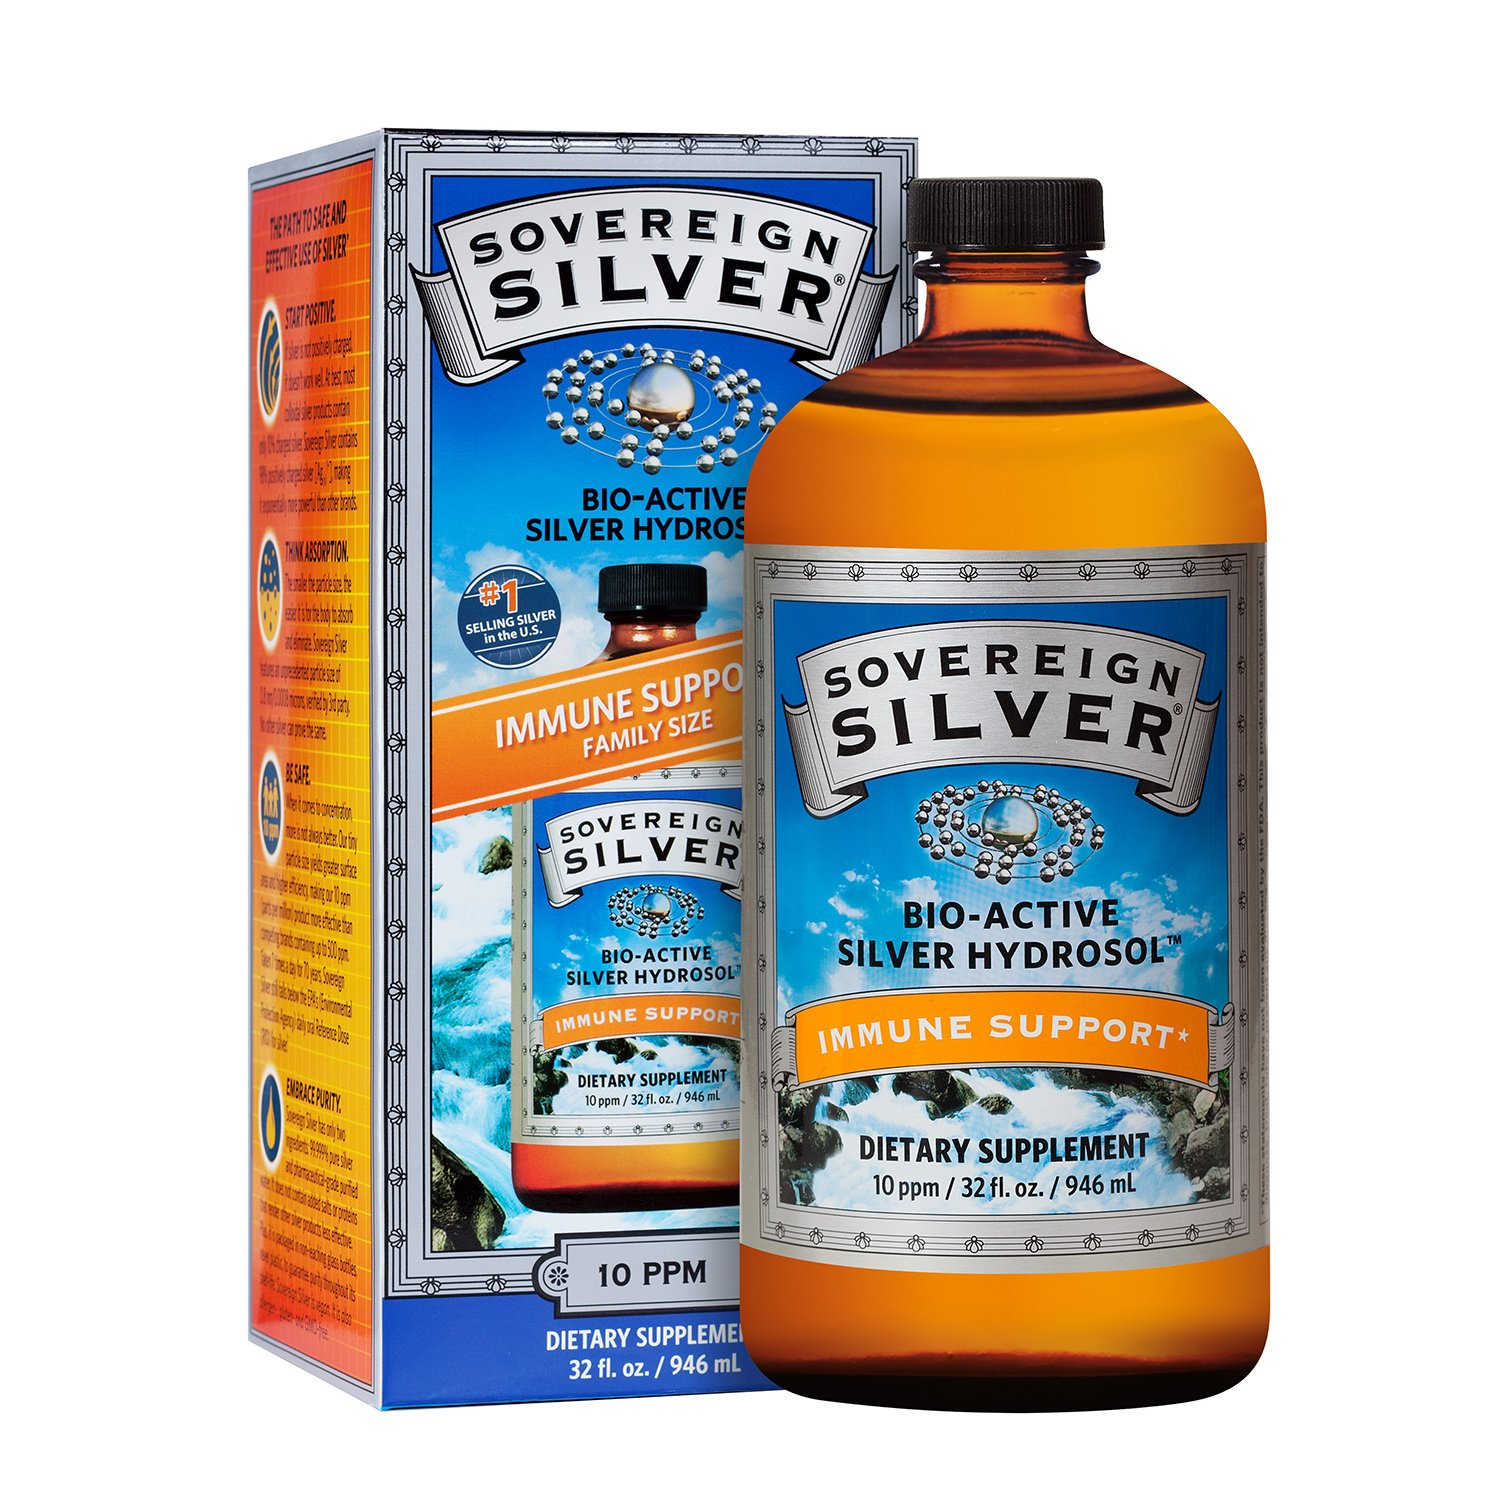 Sovereign Silver Bio-Active Silver Hydrosol for Immune Support* - 32oz - The Ultimate Refinement of Colloidal Silver - Safe*, Pure and Effective* - Premium Silver Supplement - Family Size by Sovereign Silver